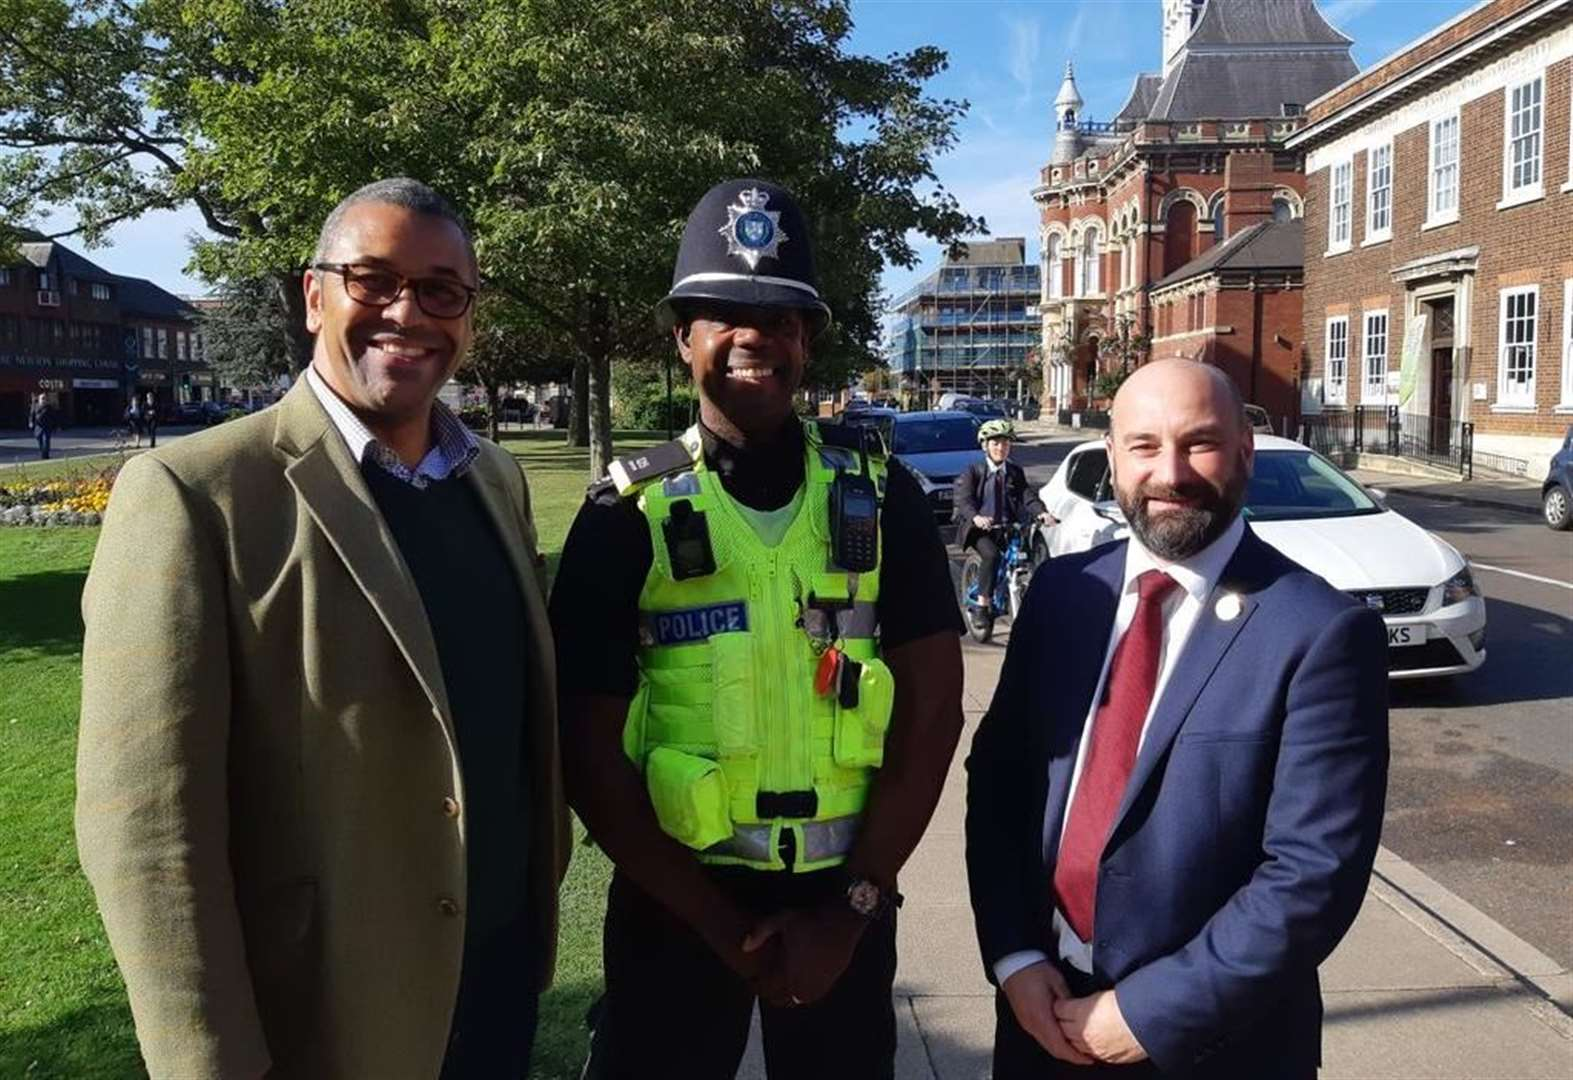 Focus is on policing as Tory Party chairman walks streets of Grantham